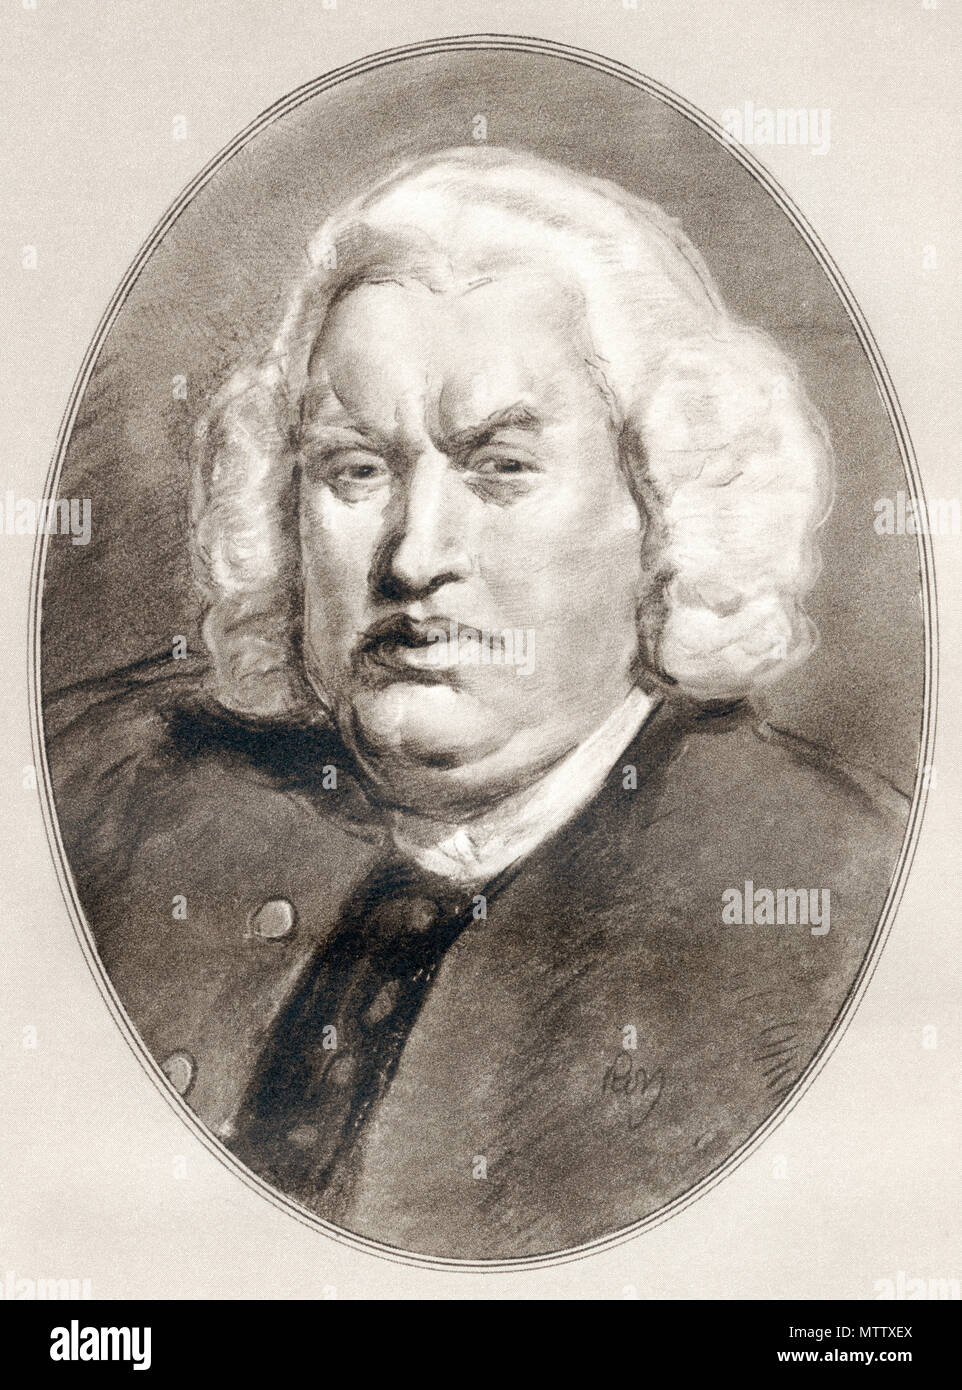 Samuel Johnson, 1709 - 1784, aka Dr. Johnson.  English writer, poet, essayist, moralist, literary critic, biographer, editor and lexicographer.  Illustration by Gordon Ross, American artist and illustrator (1873-1946), from Living Biographies of Famous Men. - Stock Image